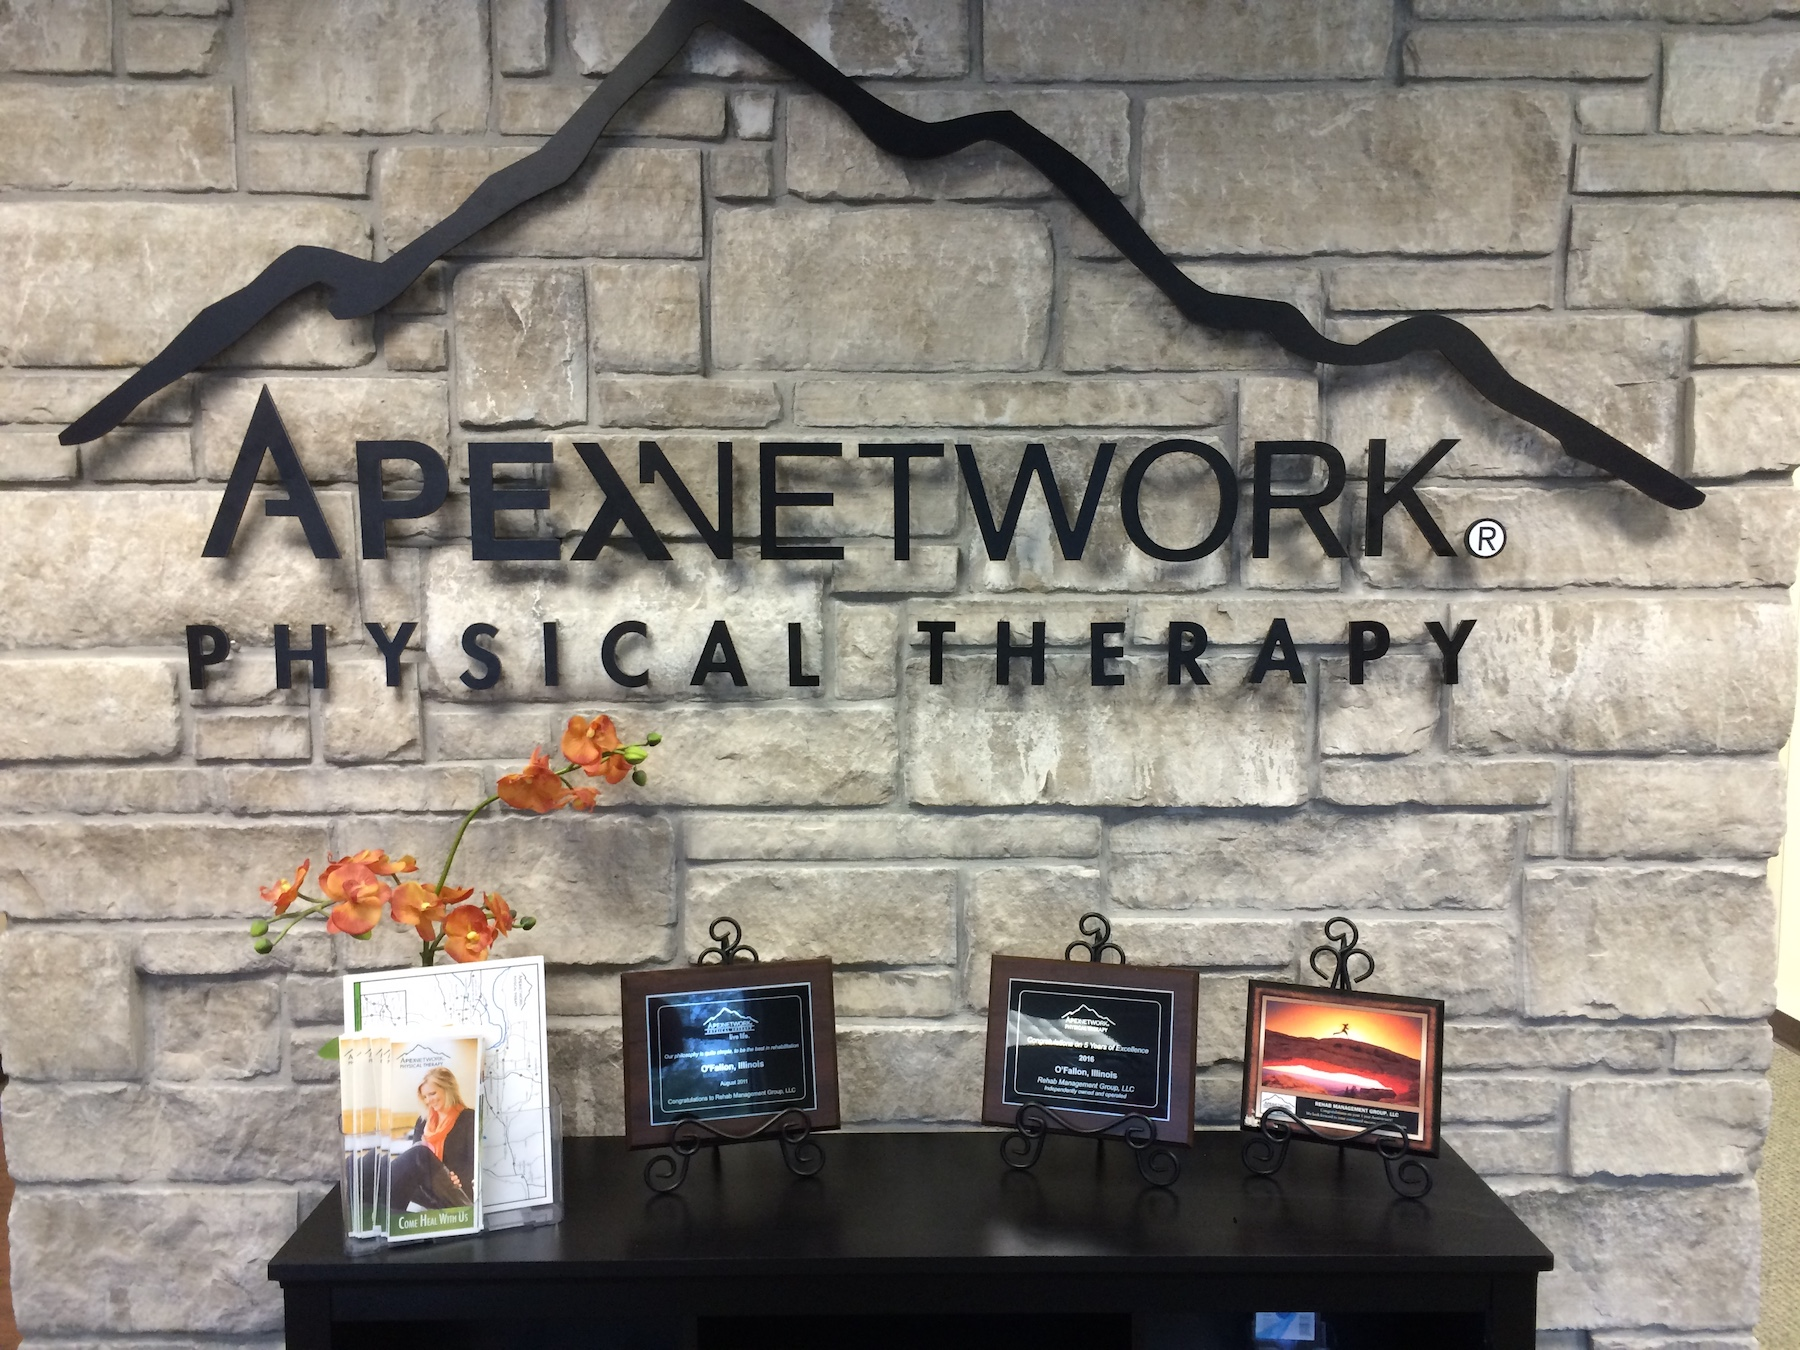 Apex Network Physical Therapy Dimensional Wall Lettering